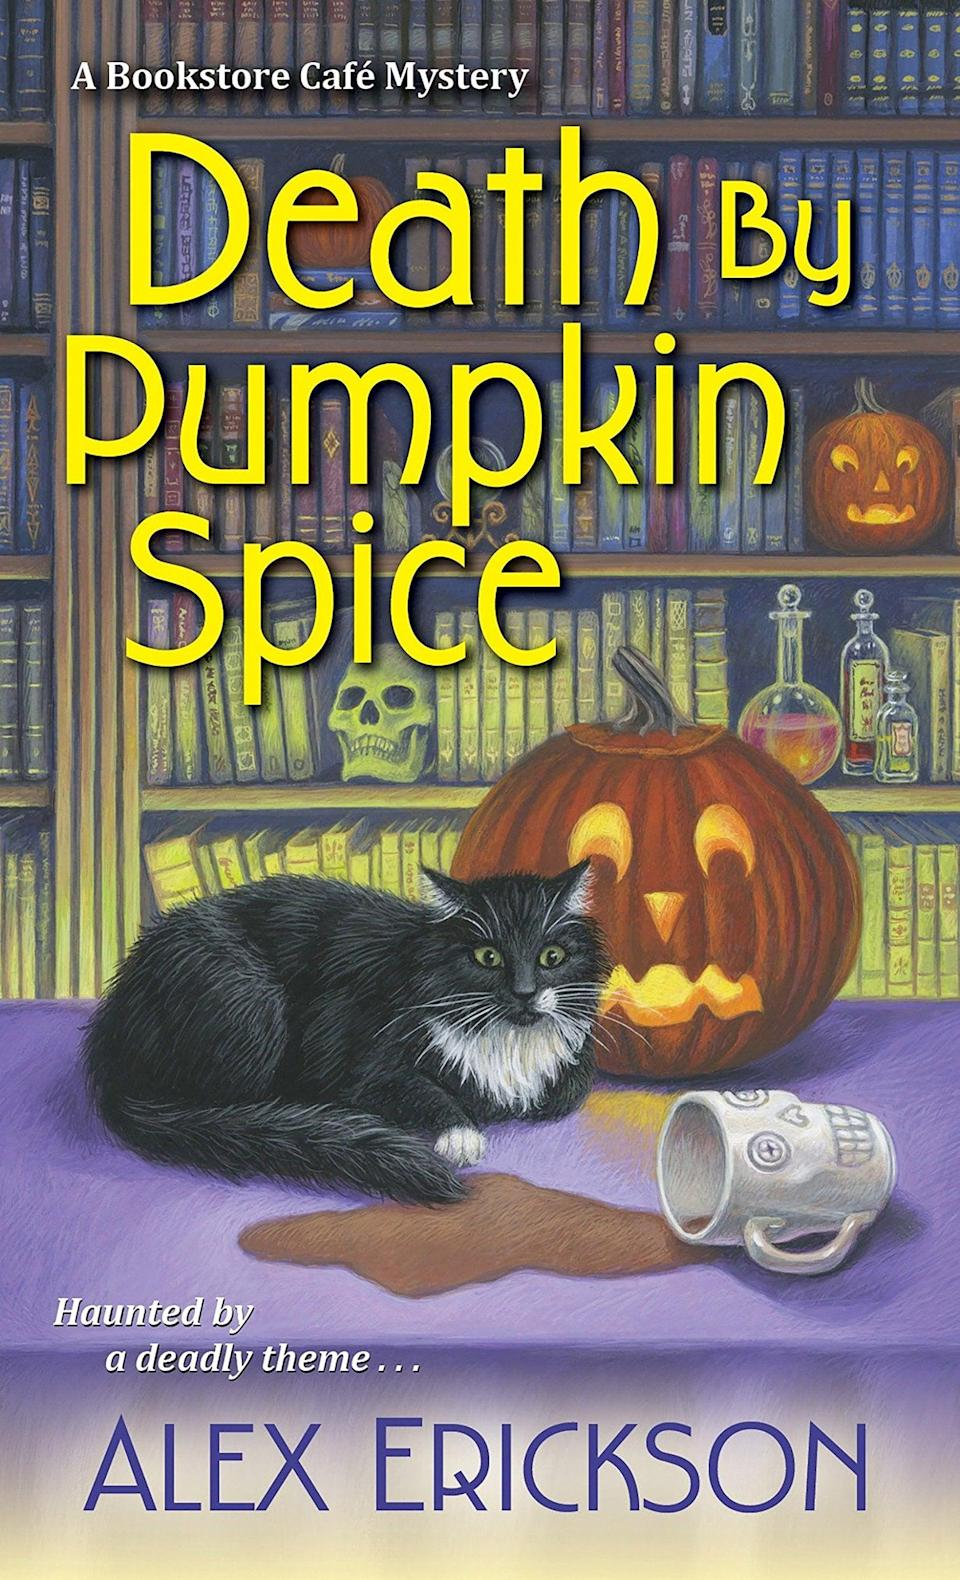 """<p>Love it or hate, pumpkin spice is an unavoidable harbinger of Fall, so it's only fitting that the divisive flavor gets a shout-out in the title of Alex Erickson's <a class=""""link rapid-noclick-resp"""" href=""""https://www.popsugar.com/Halloween"""" rel=""""nofollow noopener"""" target=""""_blank"""" data-ylk=""""slk:Halloween"""">Halloween</a> cozy mystery <span><strong>Death by Pumpkin Spice</strong></span>. Bookstore café owner Krissy Hancock finds herself swept up in a murder mystery when one of the guests at a Halloween costume party ends up dead. Now she has to solve a crime alongside a sexy cop (the horror!) instead of serving up delicious seasonal bake goods at her shop.</p>"""